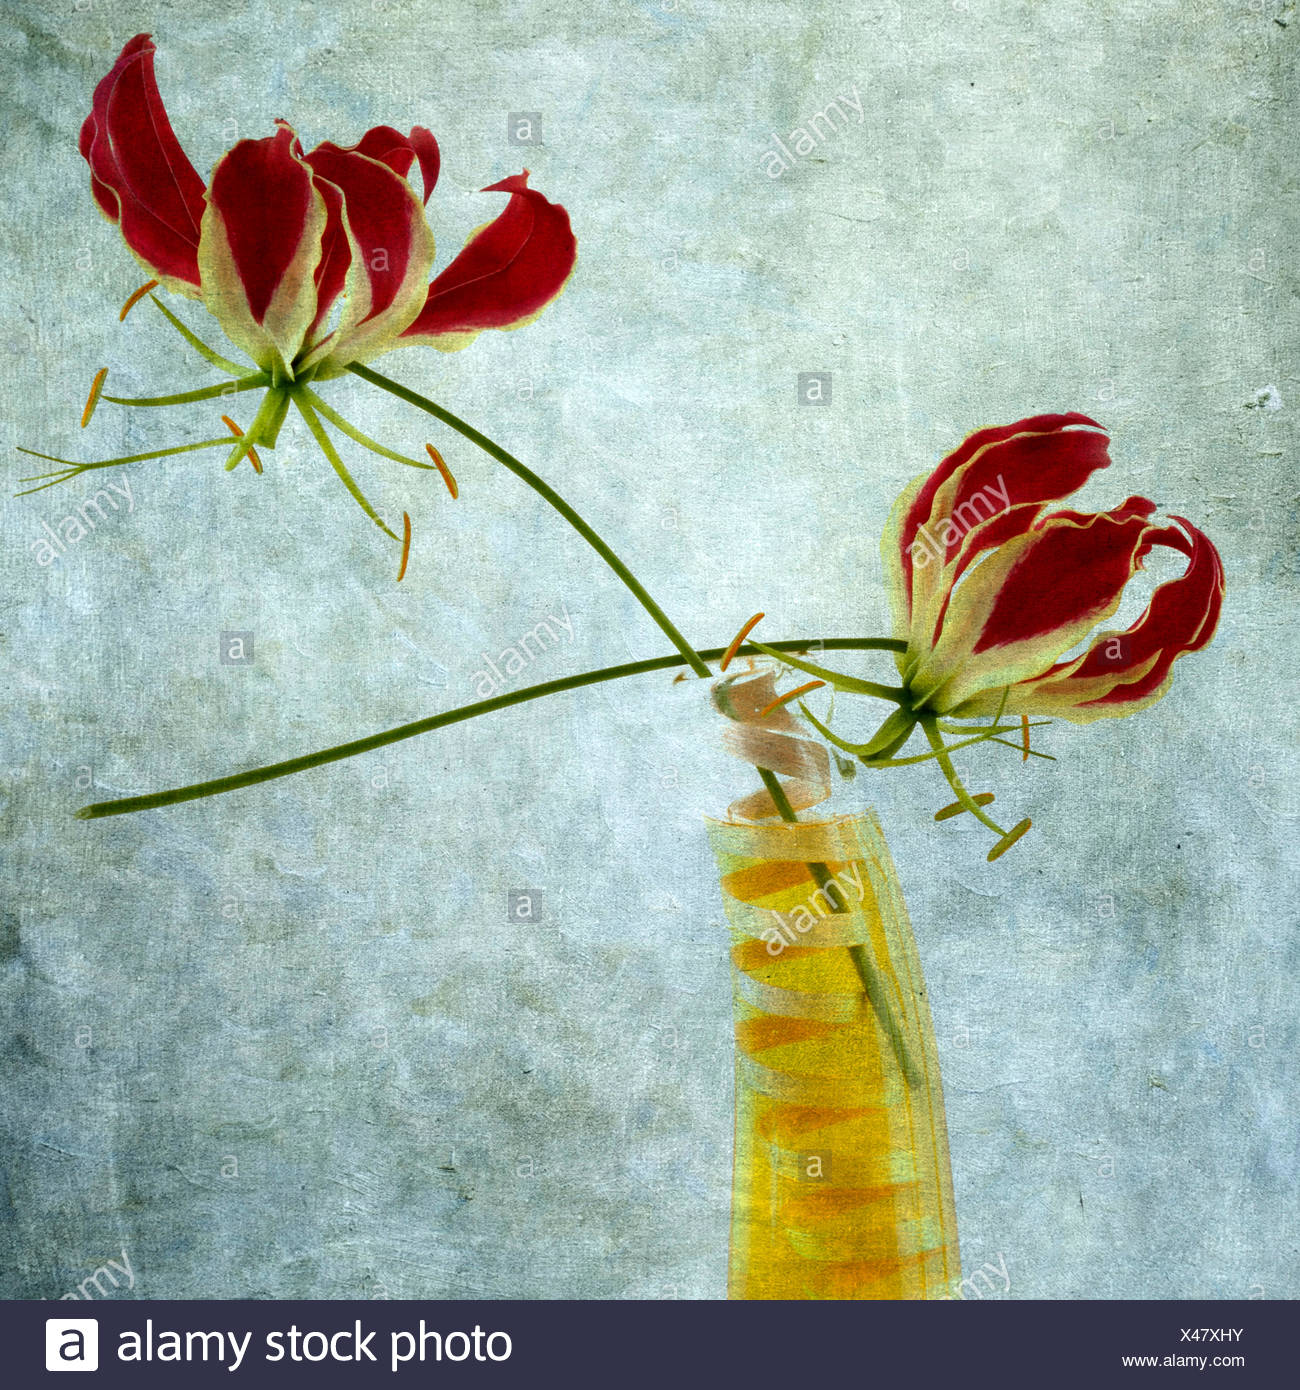 Red lilies flowers stock photos red lilies flowers stock images red lilies flowers vintage look stock image izmirmasajfo